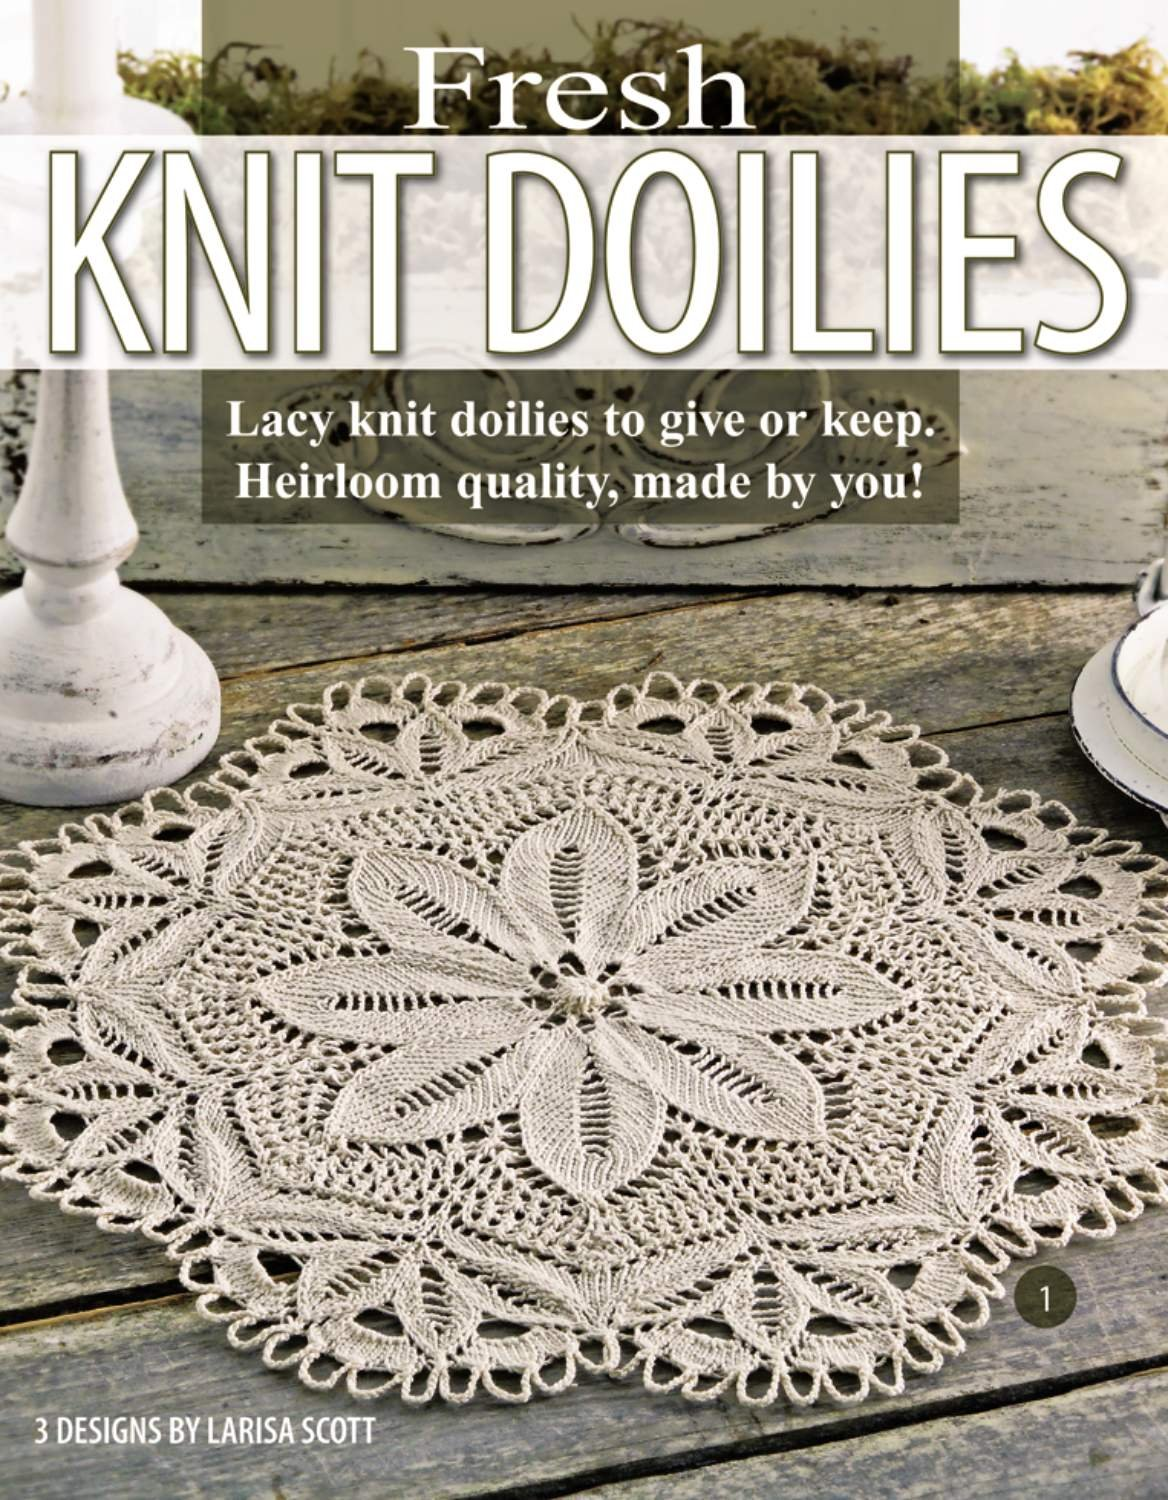 Knit Doily Patterns For Beginners